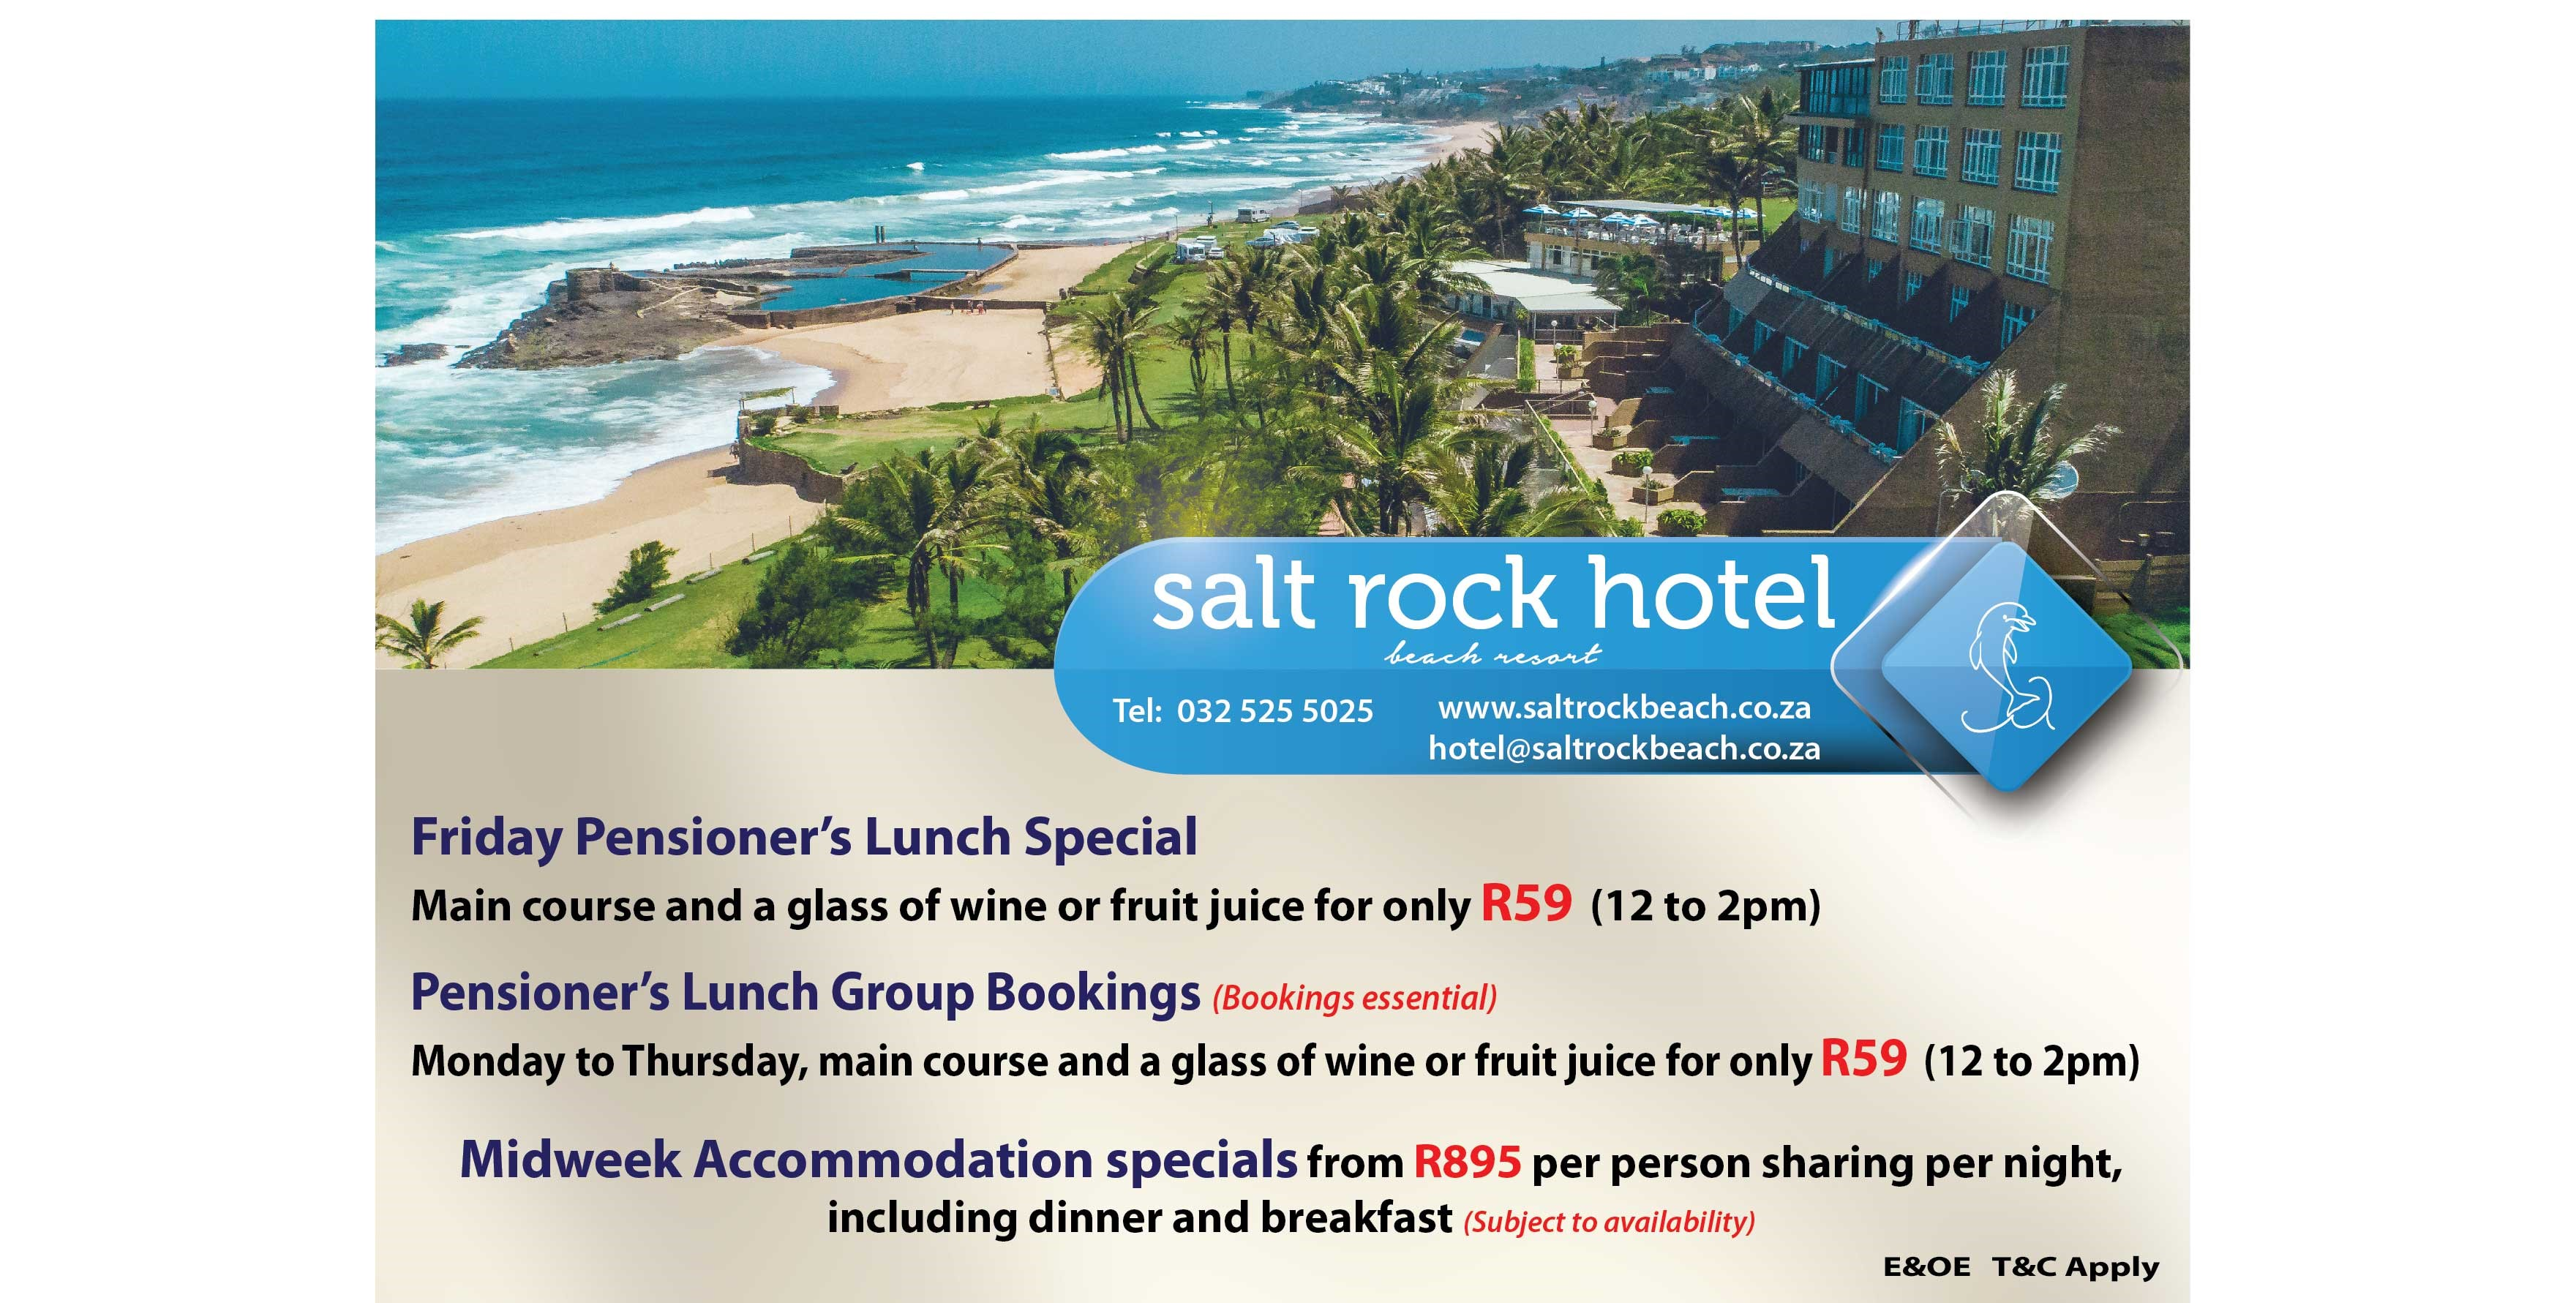 Pensioner Specials at Salt Rock Hotel